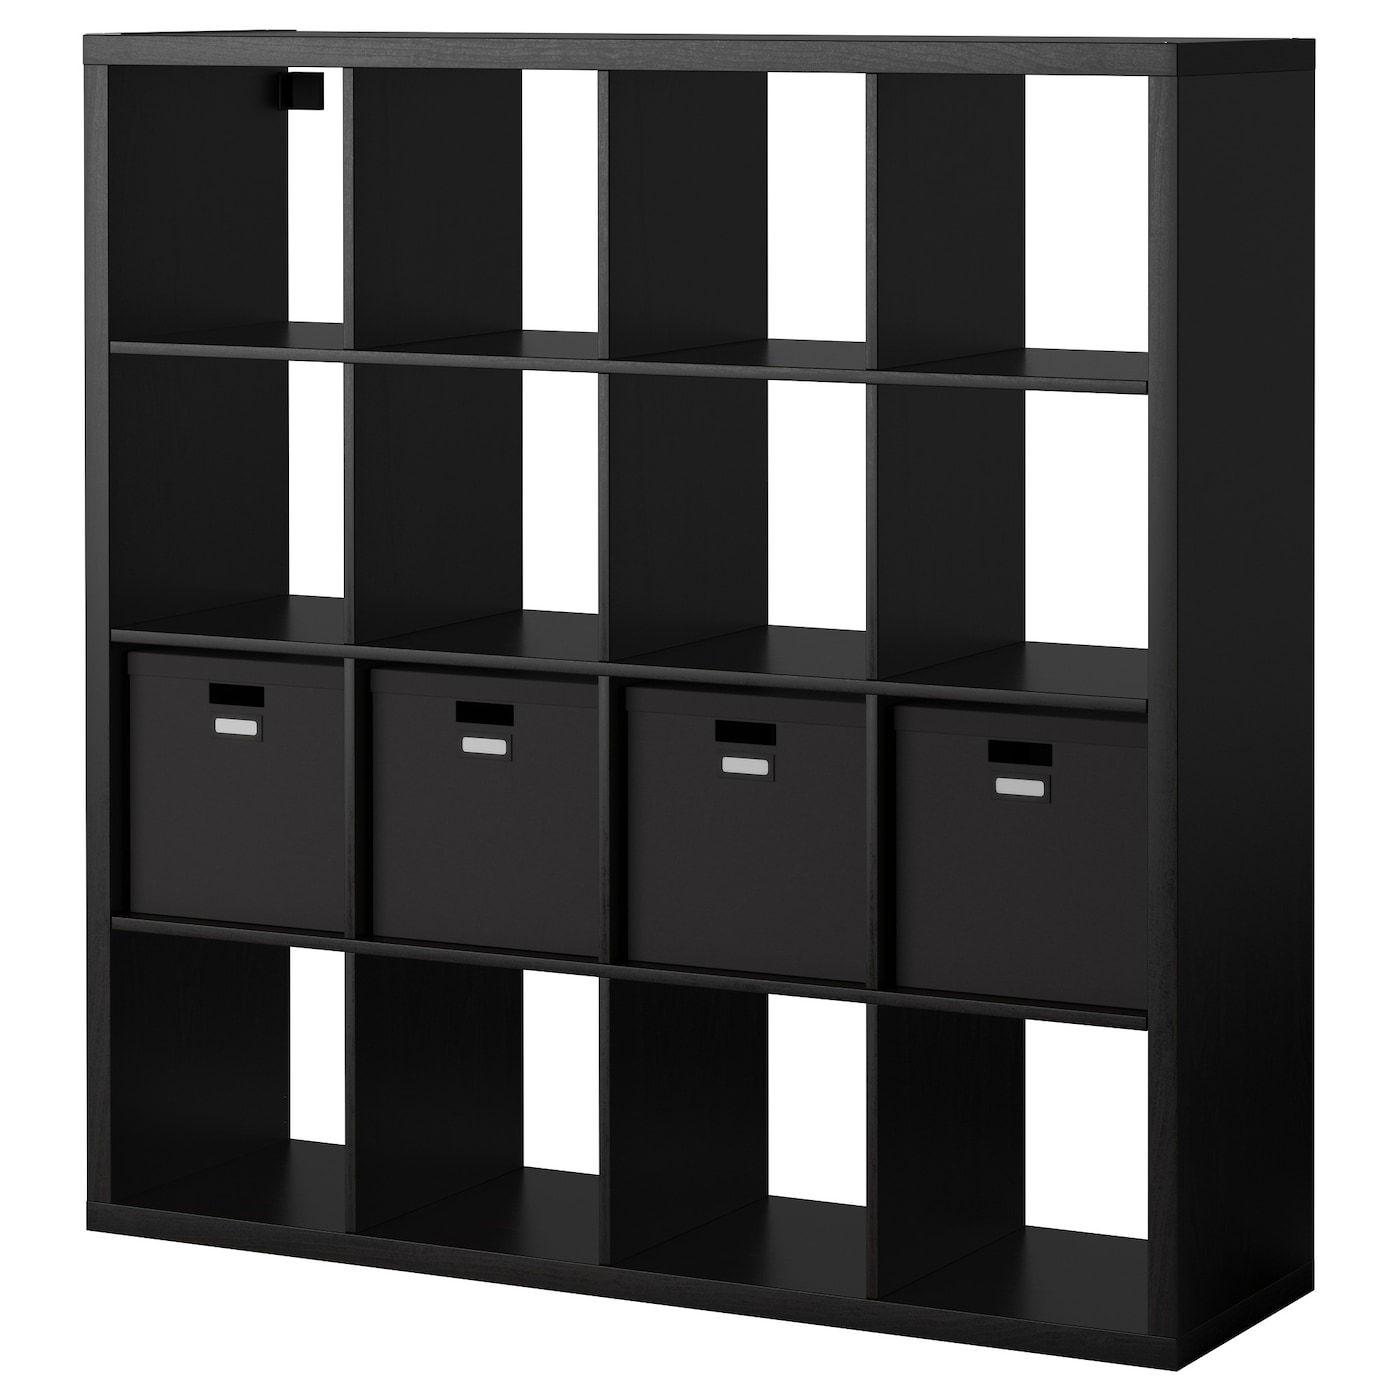 IKEA KALLAX/TJENA shelving unit with 4 inserts